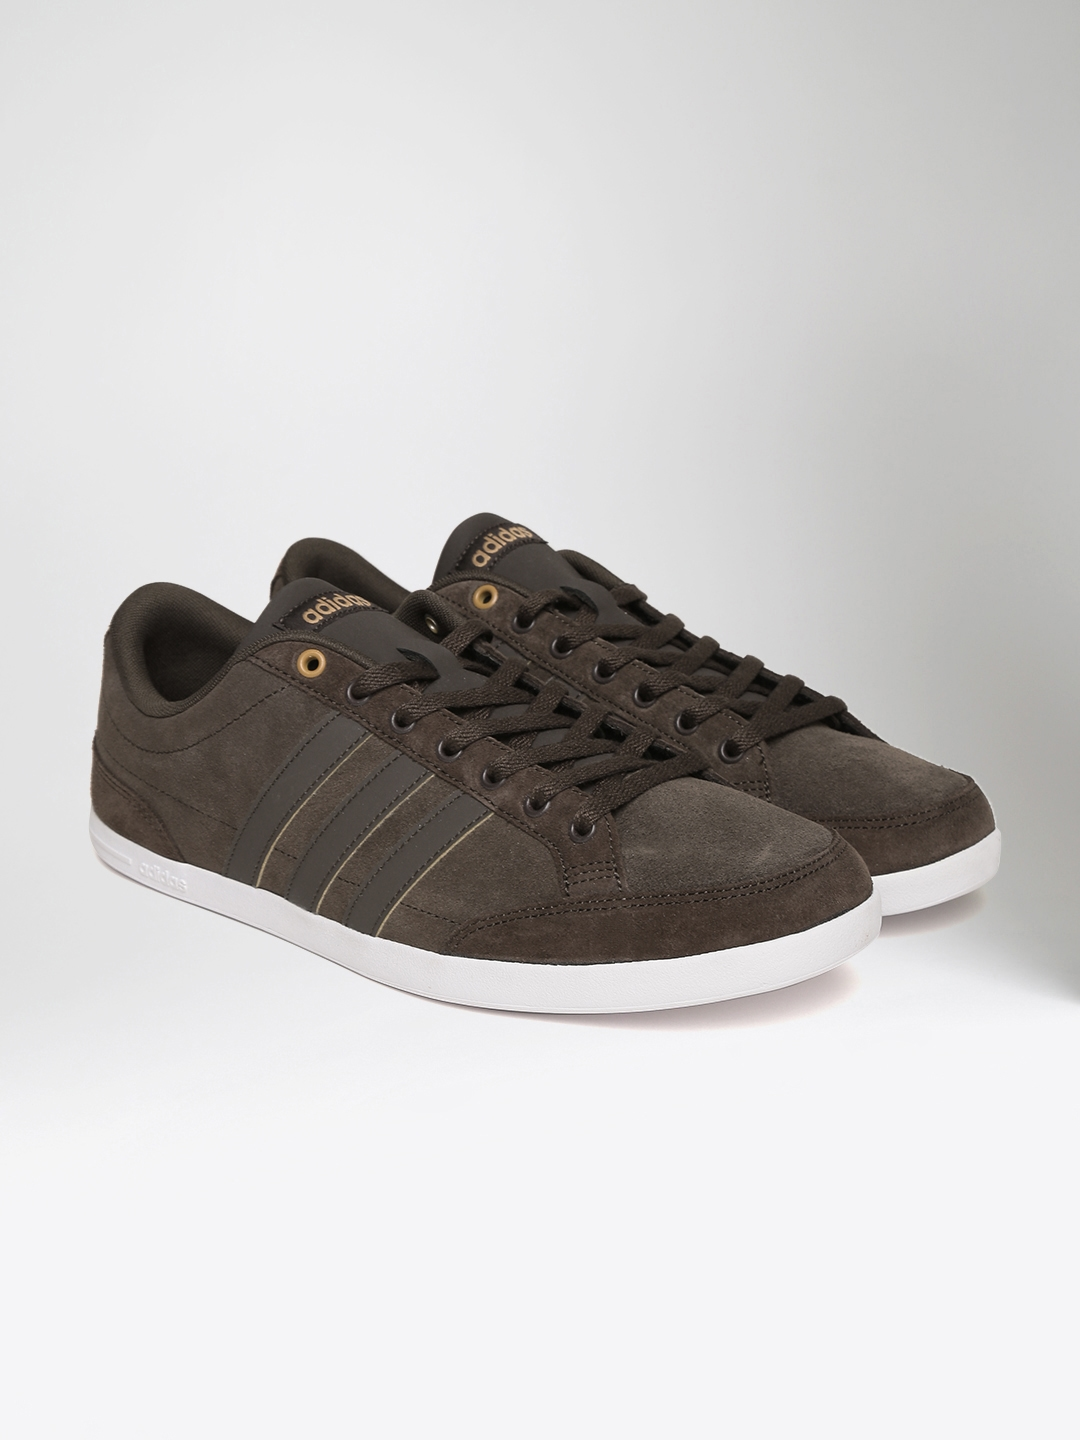 cc0af21f9f1d Buy ADIDAS NEO Men Coffee Brown CAFLAIRE Suede Sneakers - Casual ...